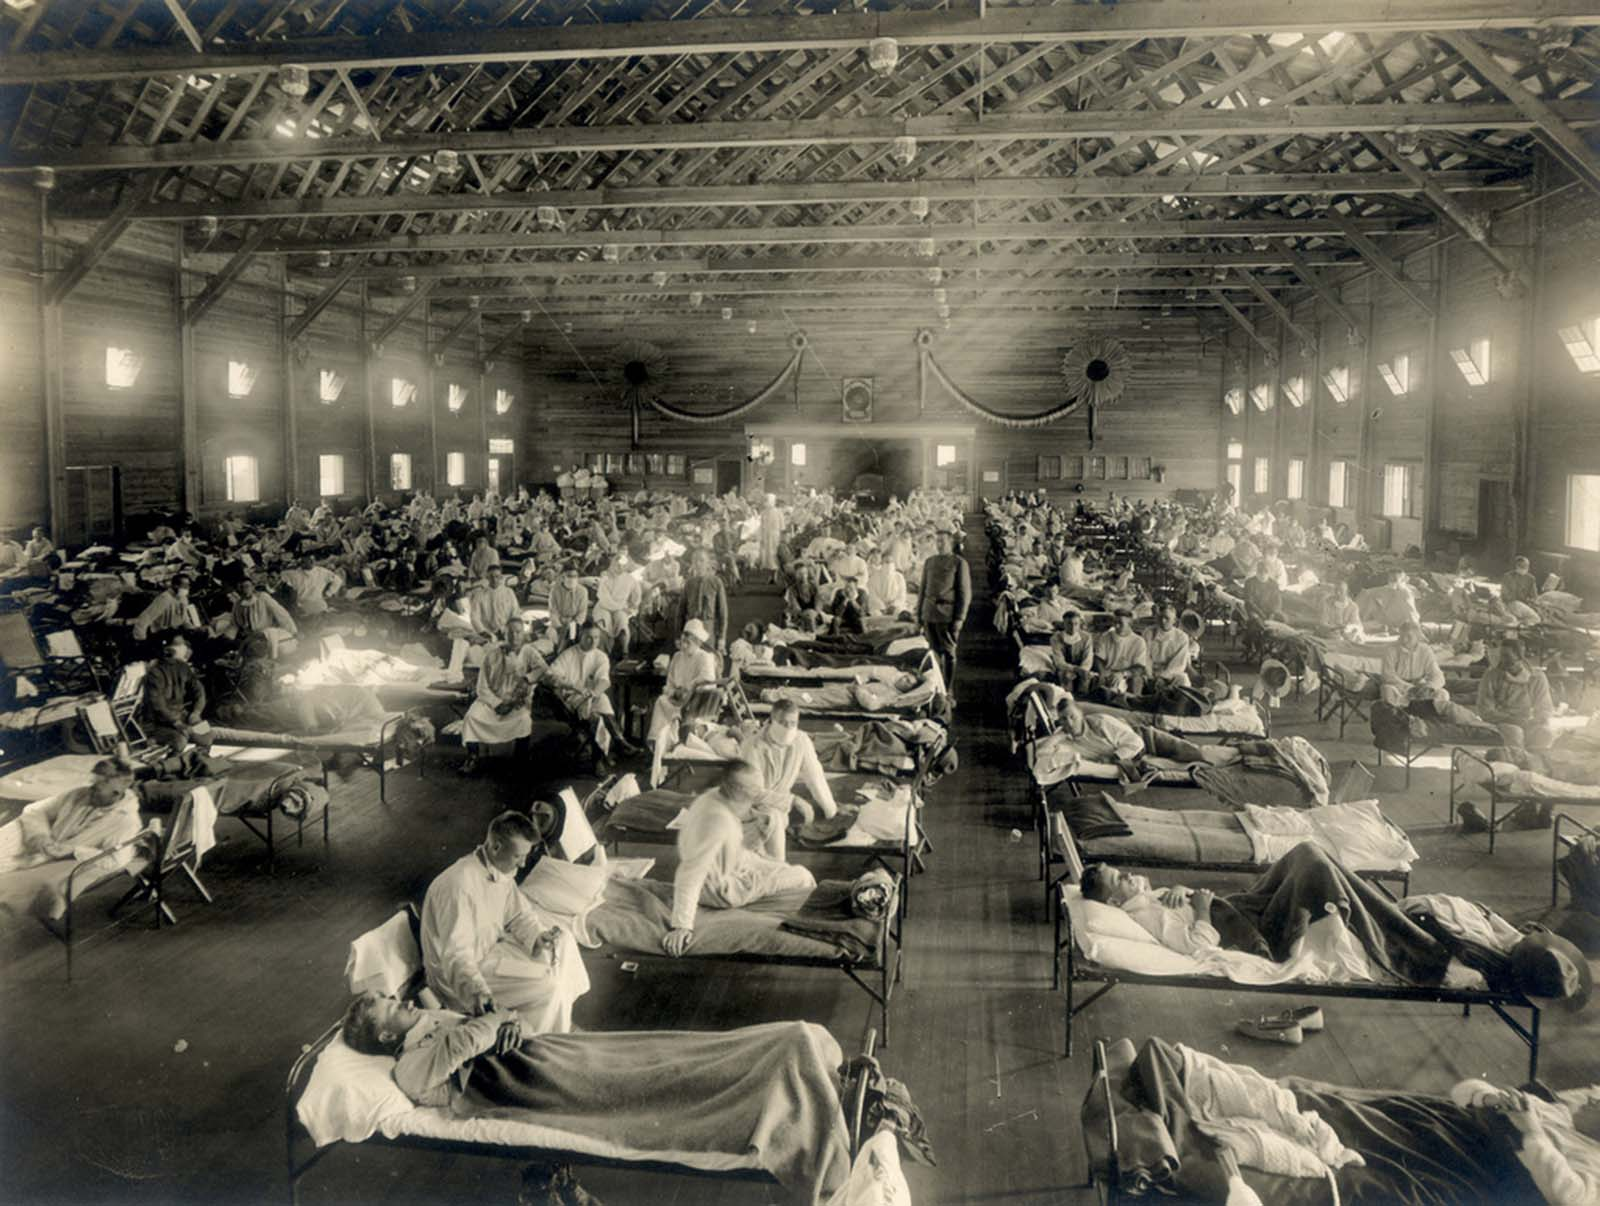 The first official cases of the 1918 Spanish flu pandemic were recorded at the U.S. Army's Camp Funston, Kansas, where this emergency influenza ward held treated patients.